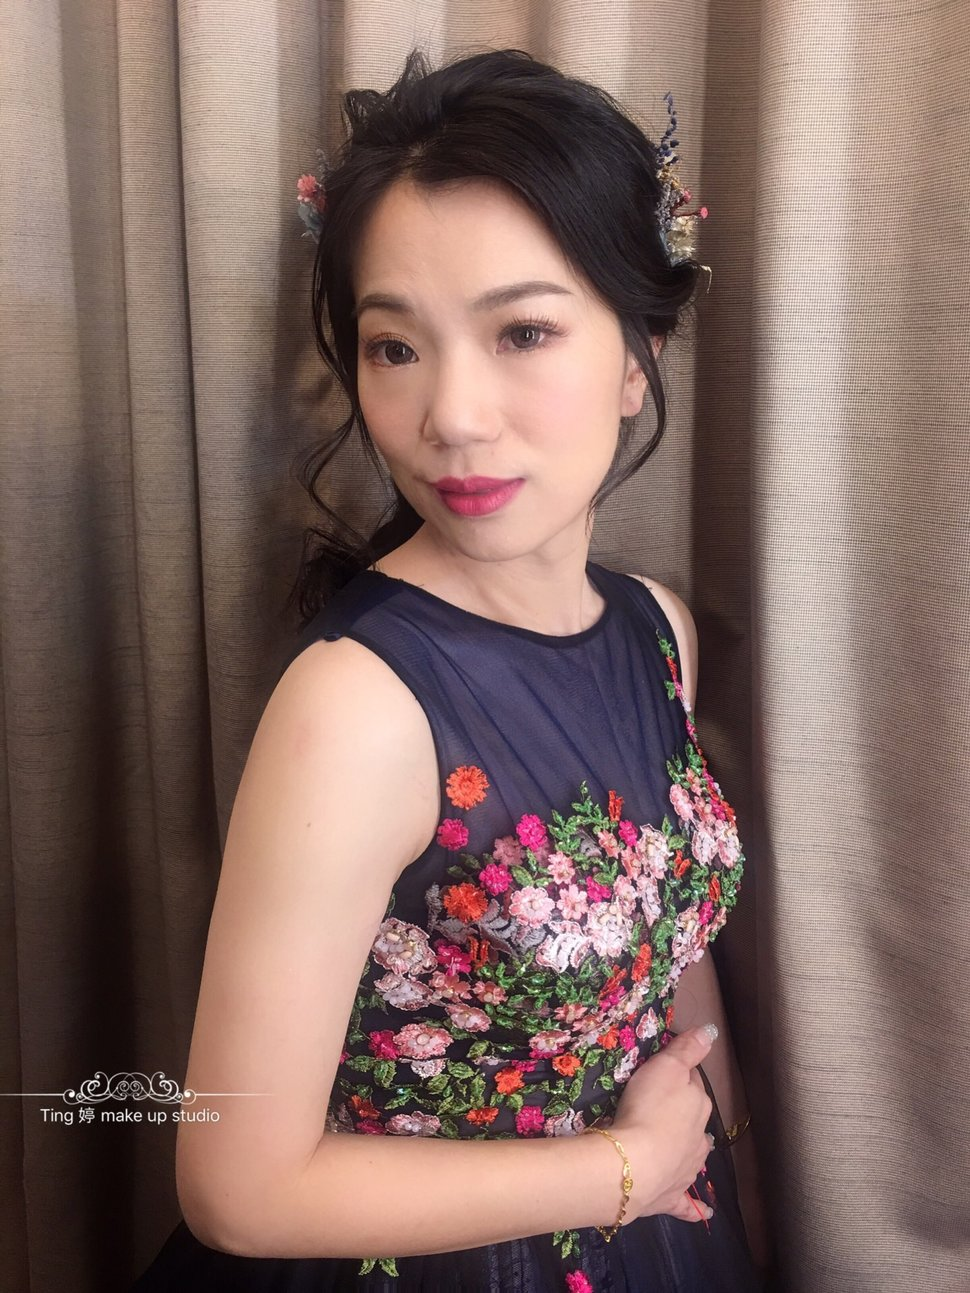 CCEA16A3-0846-42EB-88B4-A342ACB65C7E - Ting婷 make up studio《結婚吧》